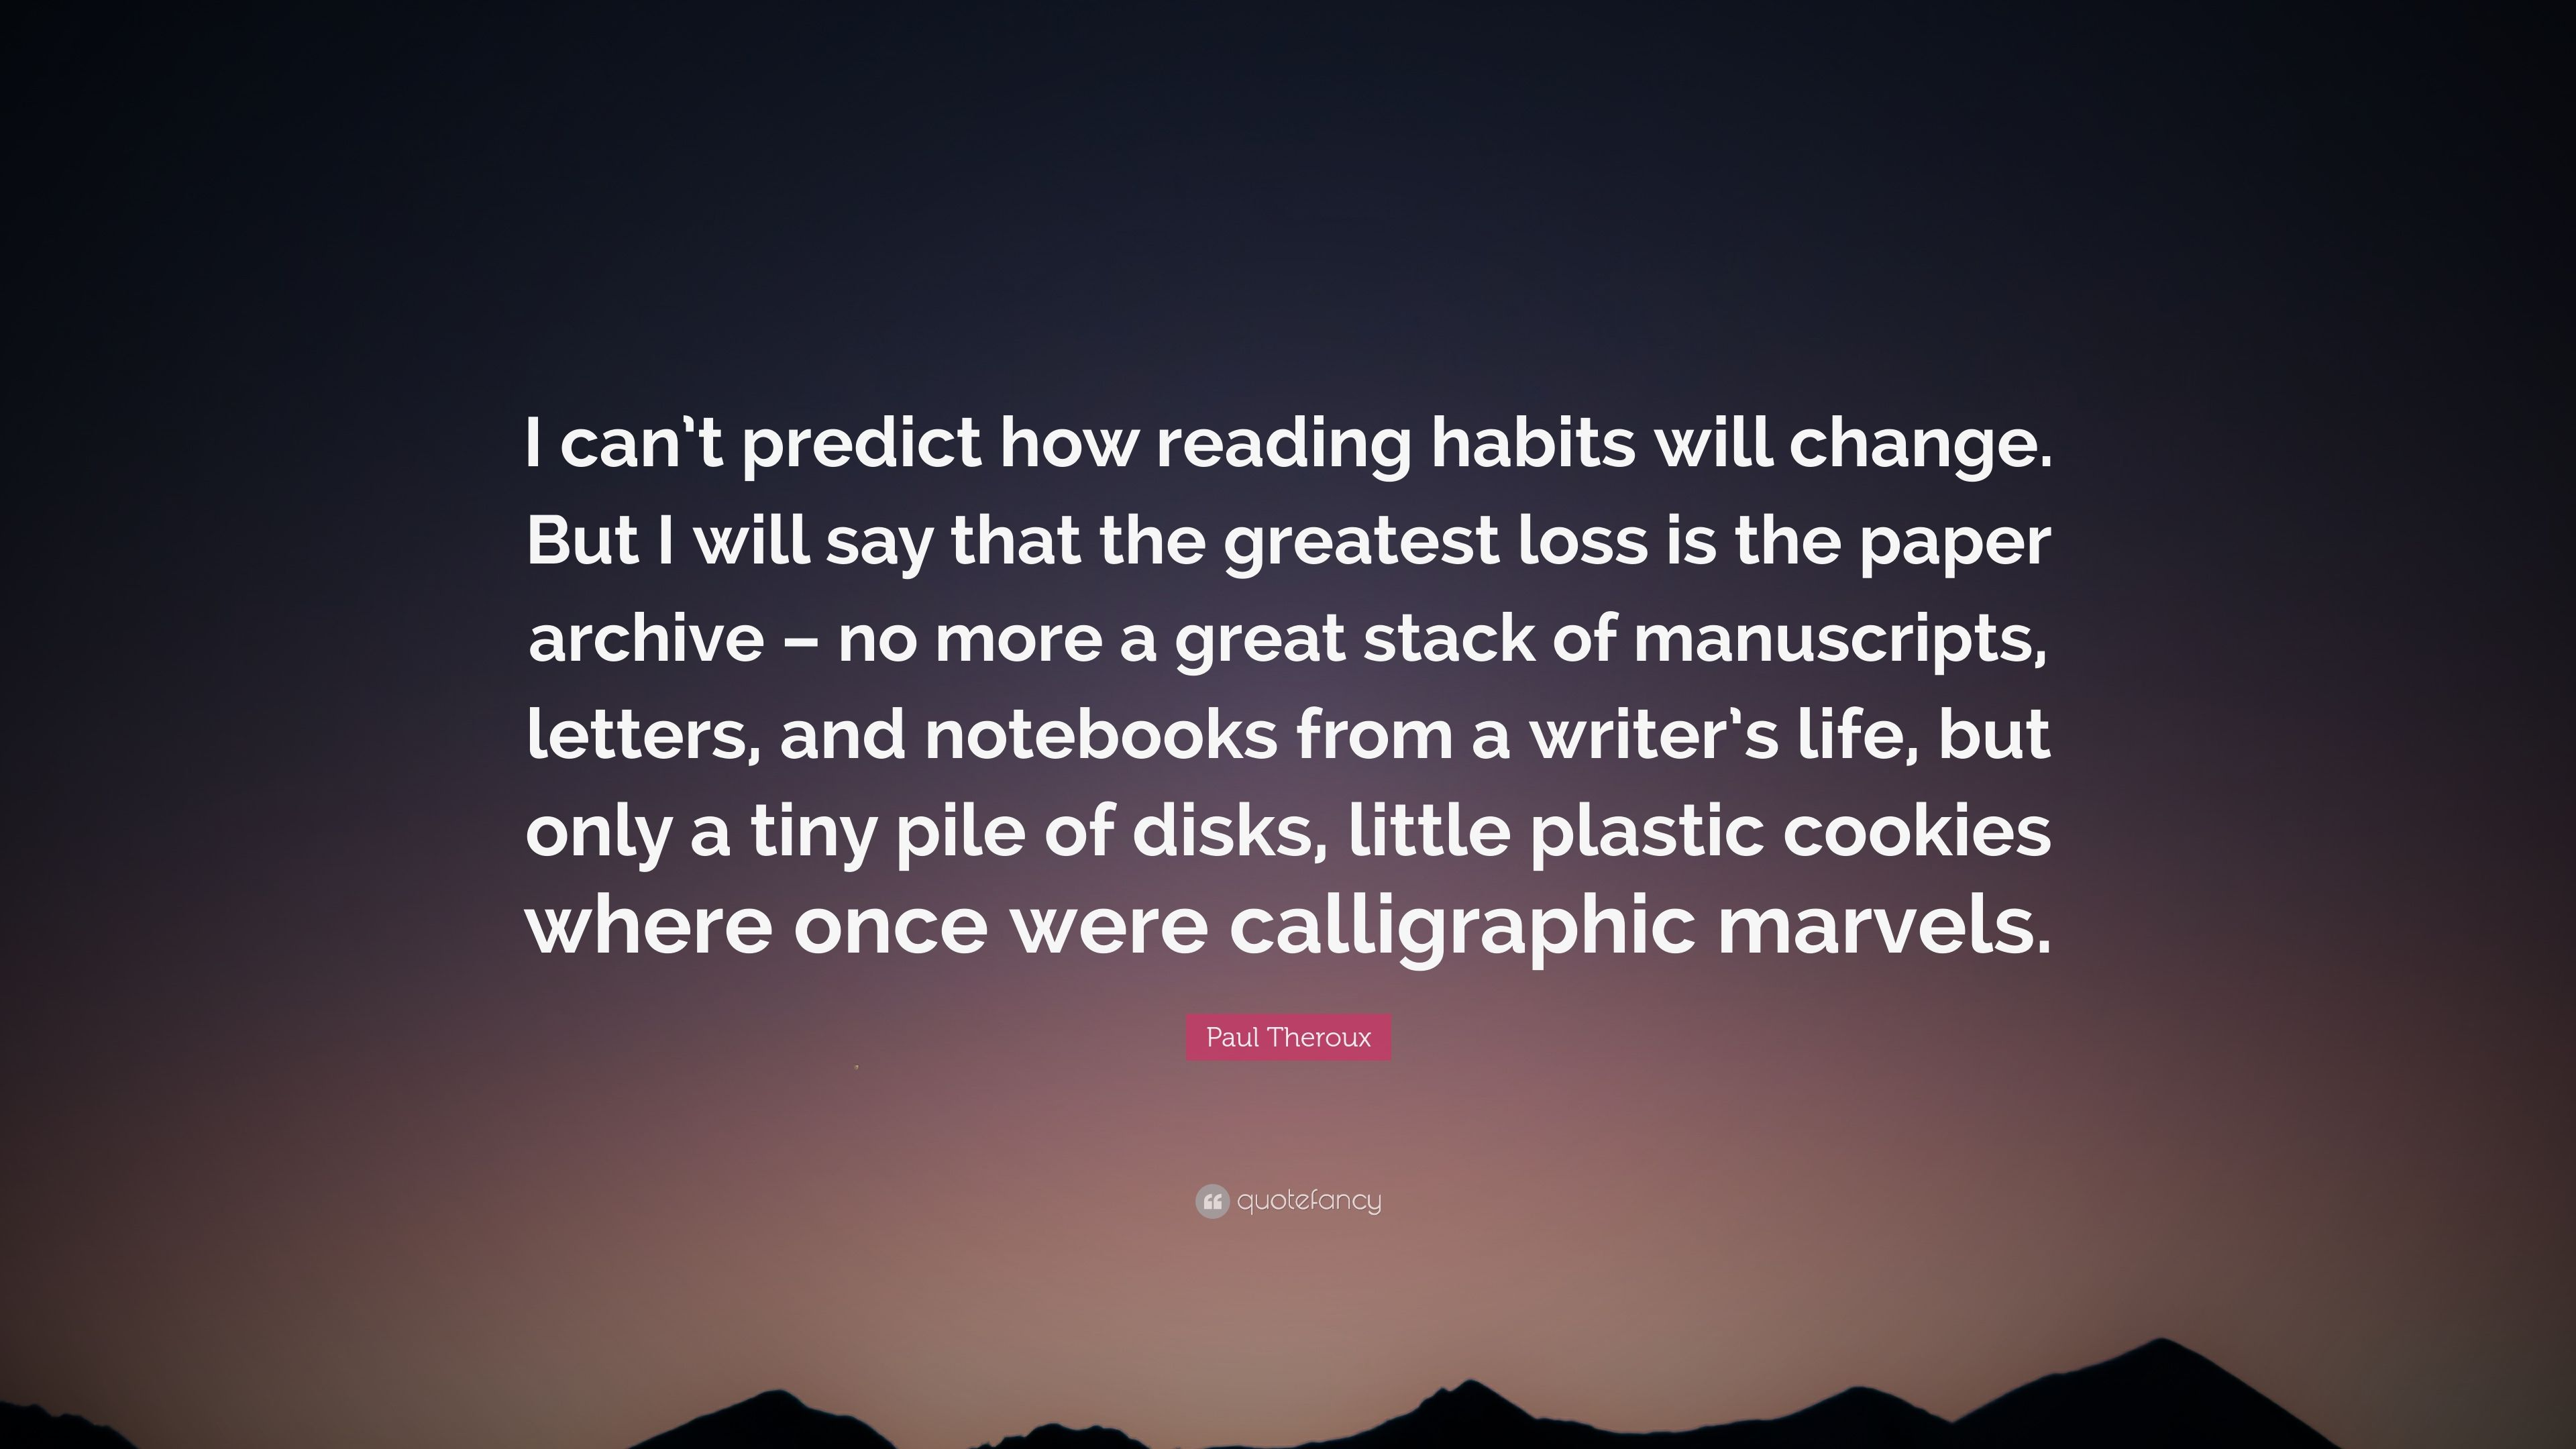 Paul Theroux Quote I Can T Predict How Reading Habits Will Change But I Will Say That The Greatest Loss Is The Paper Archive No More A G 7 Wallpapers Quotefancy